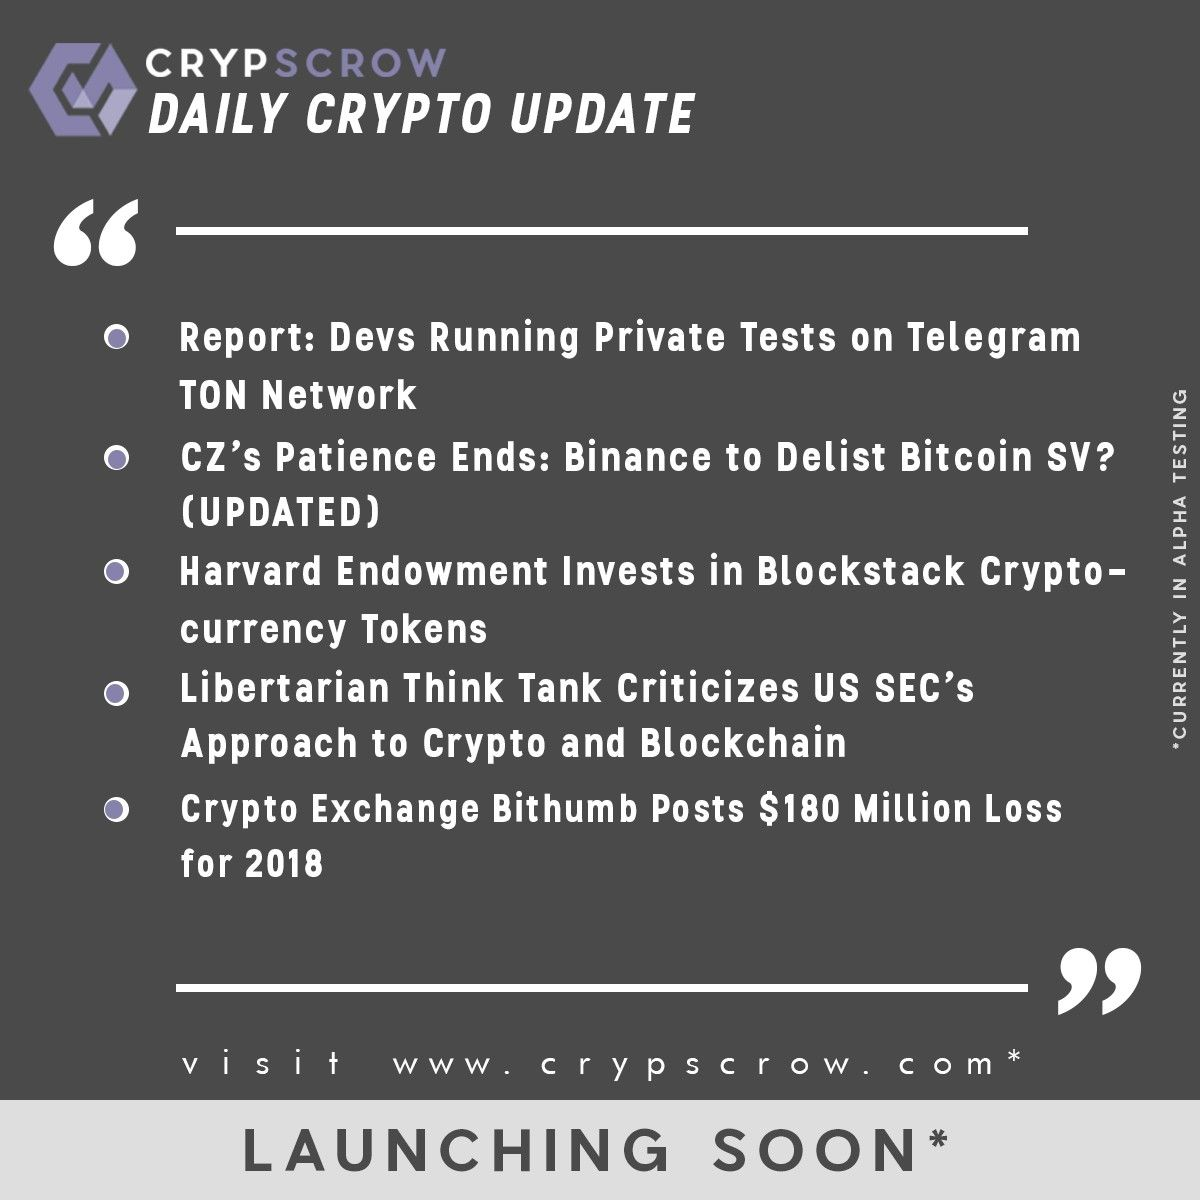 Dailycryptoupdate Cryptonews Crypscrow Devs Telegram Ton Cz